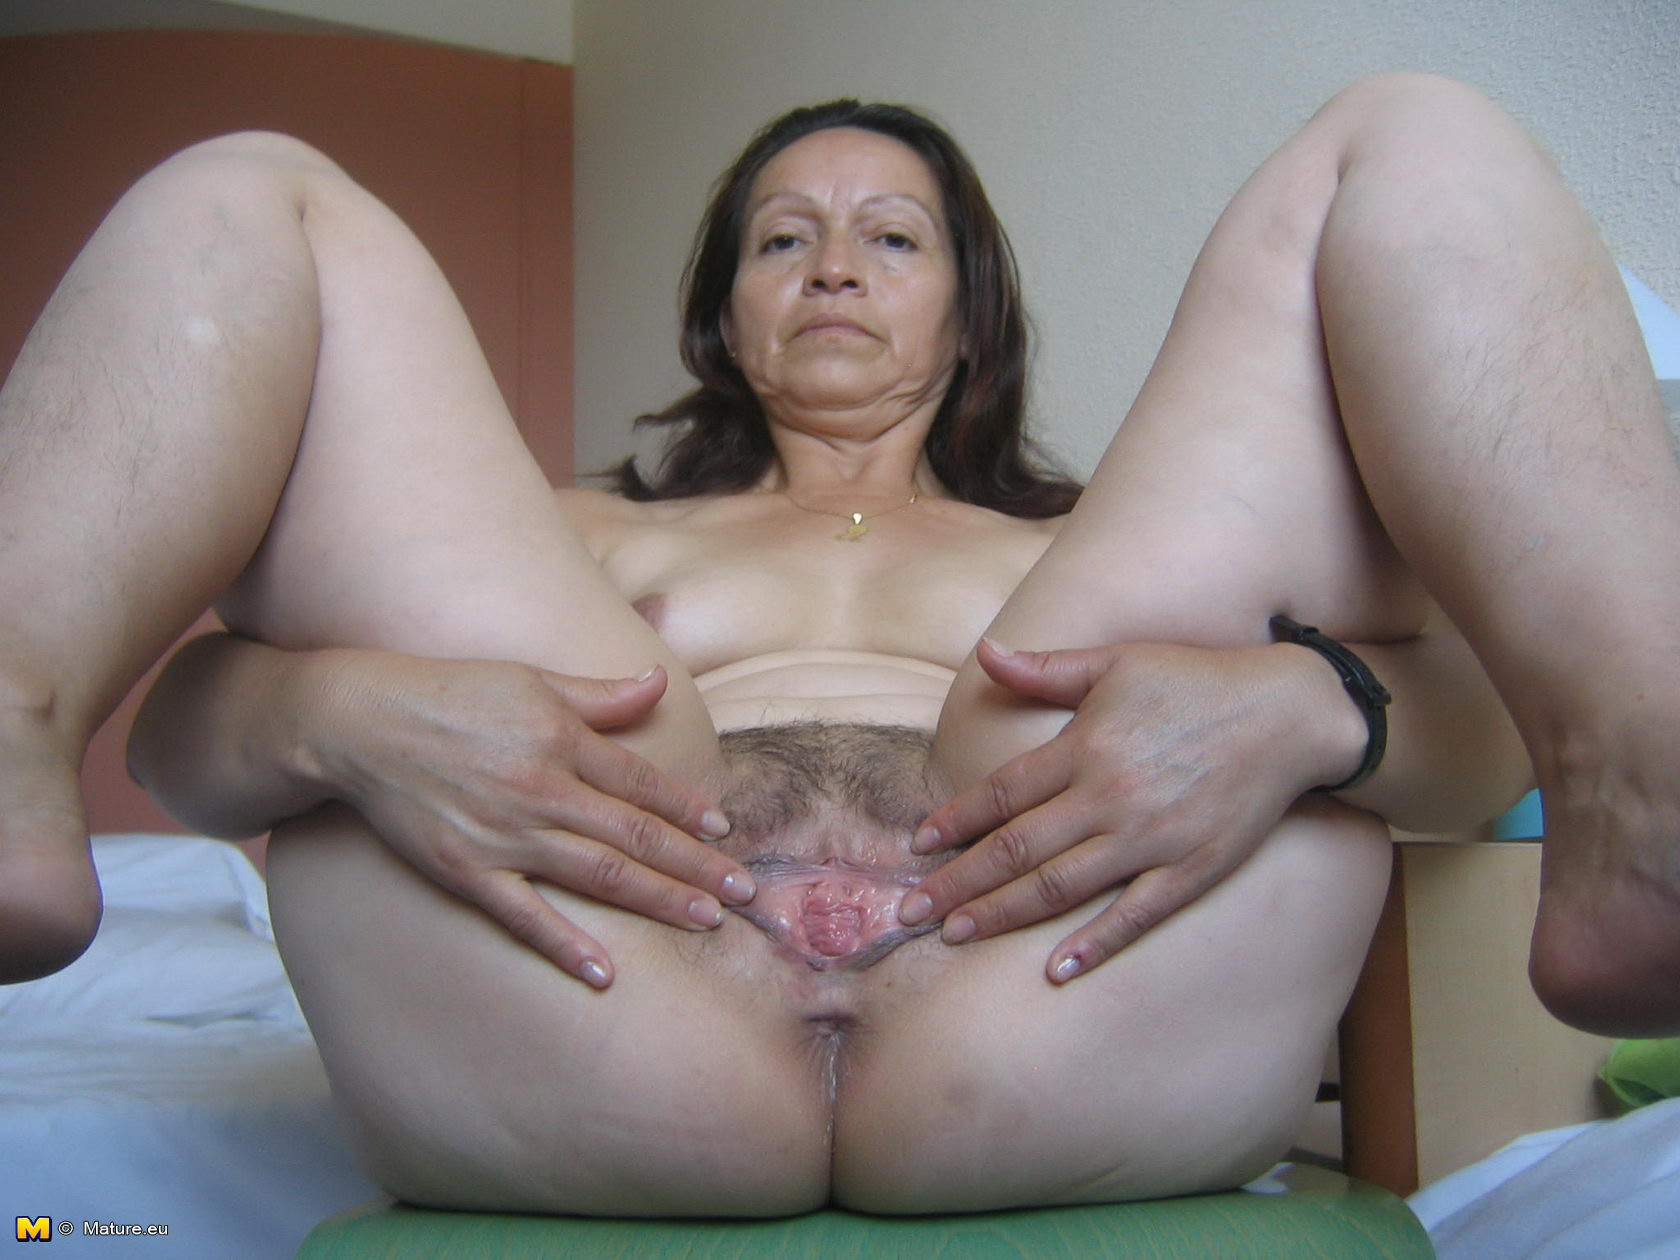 Healthy! Mature saggy naked eu simply excellent